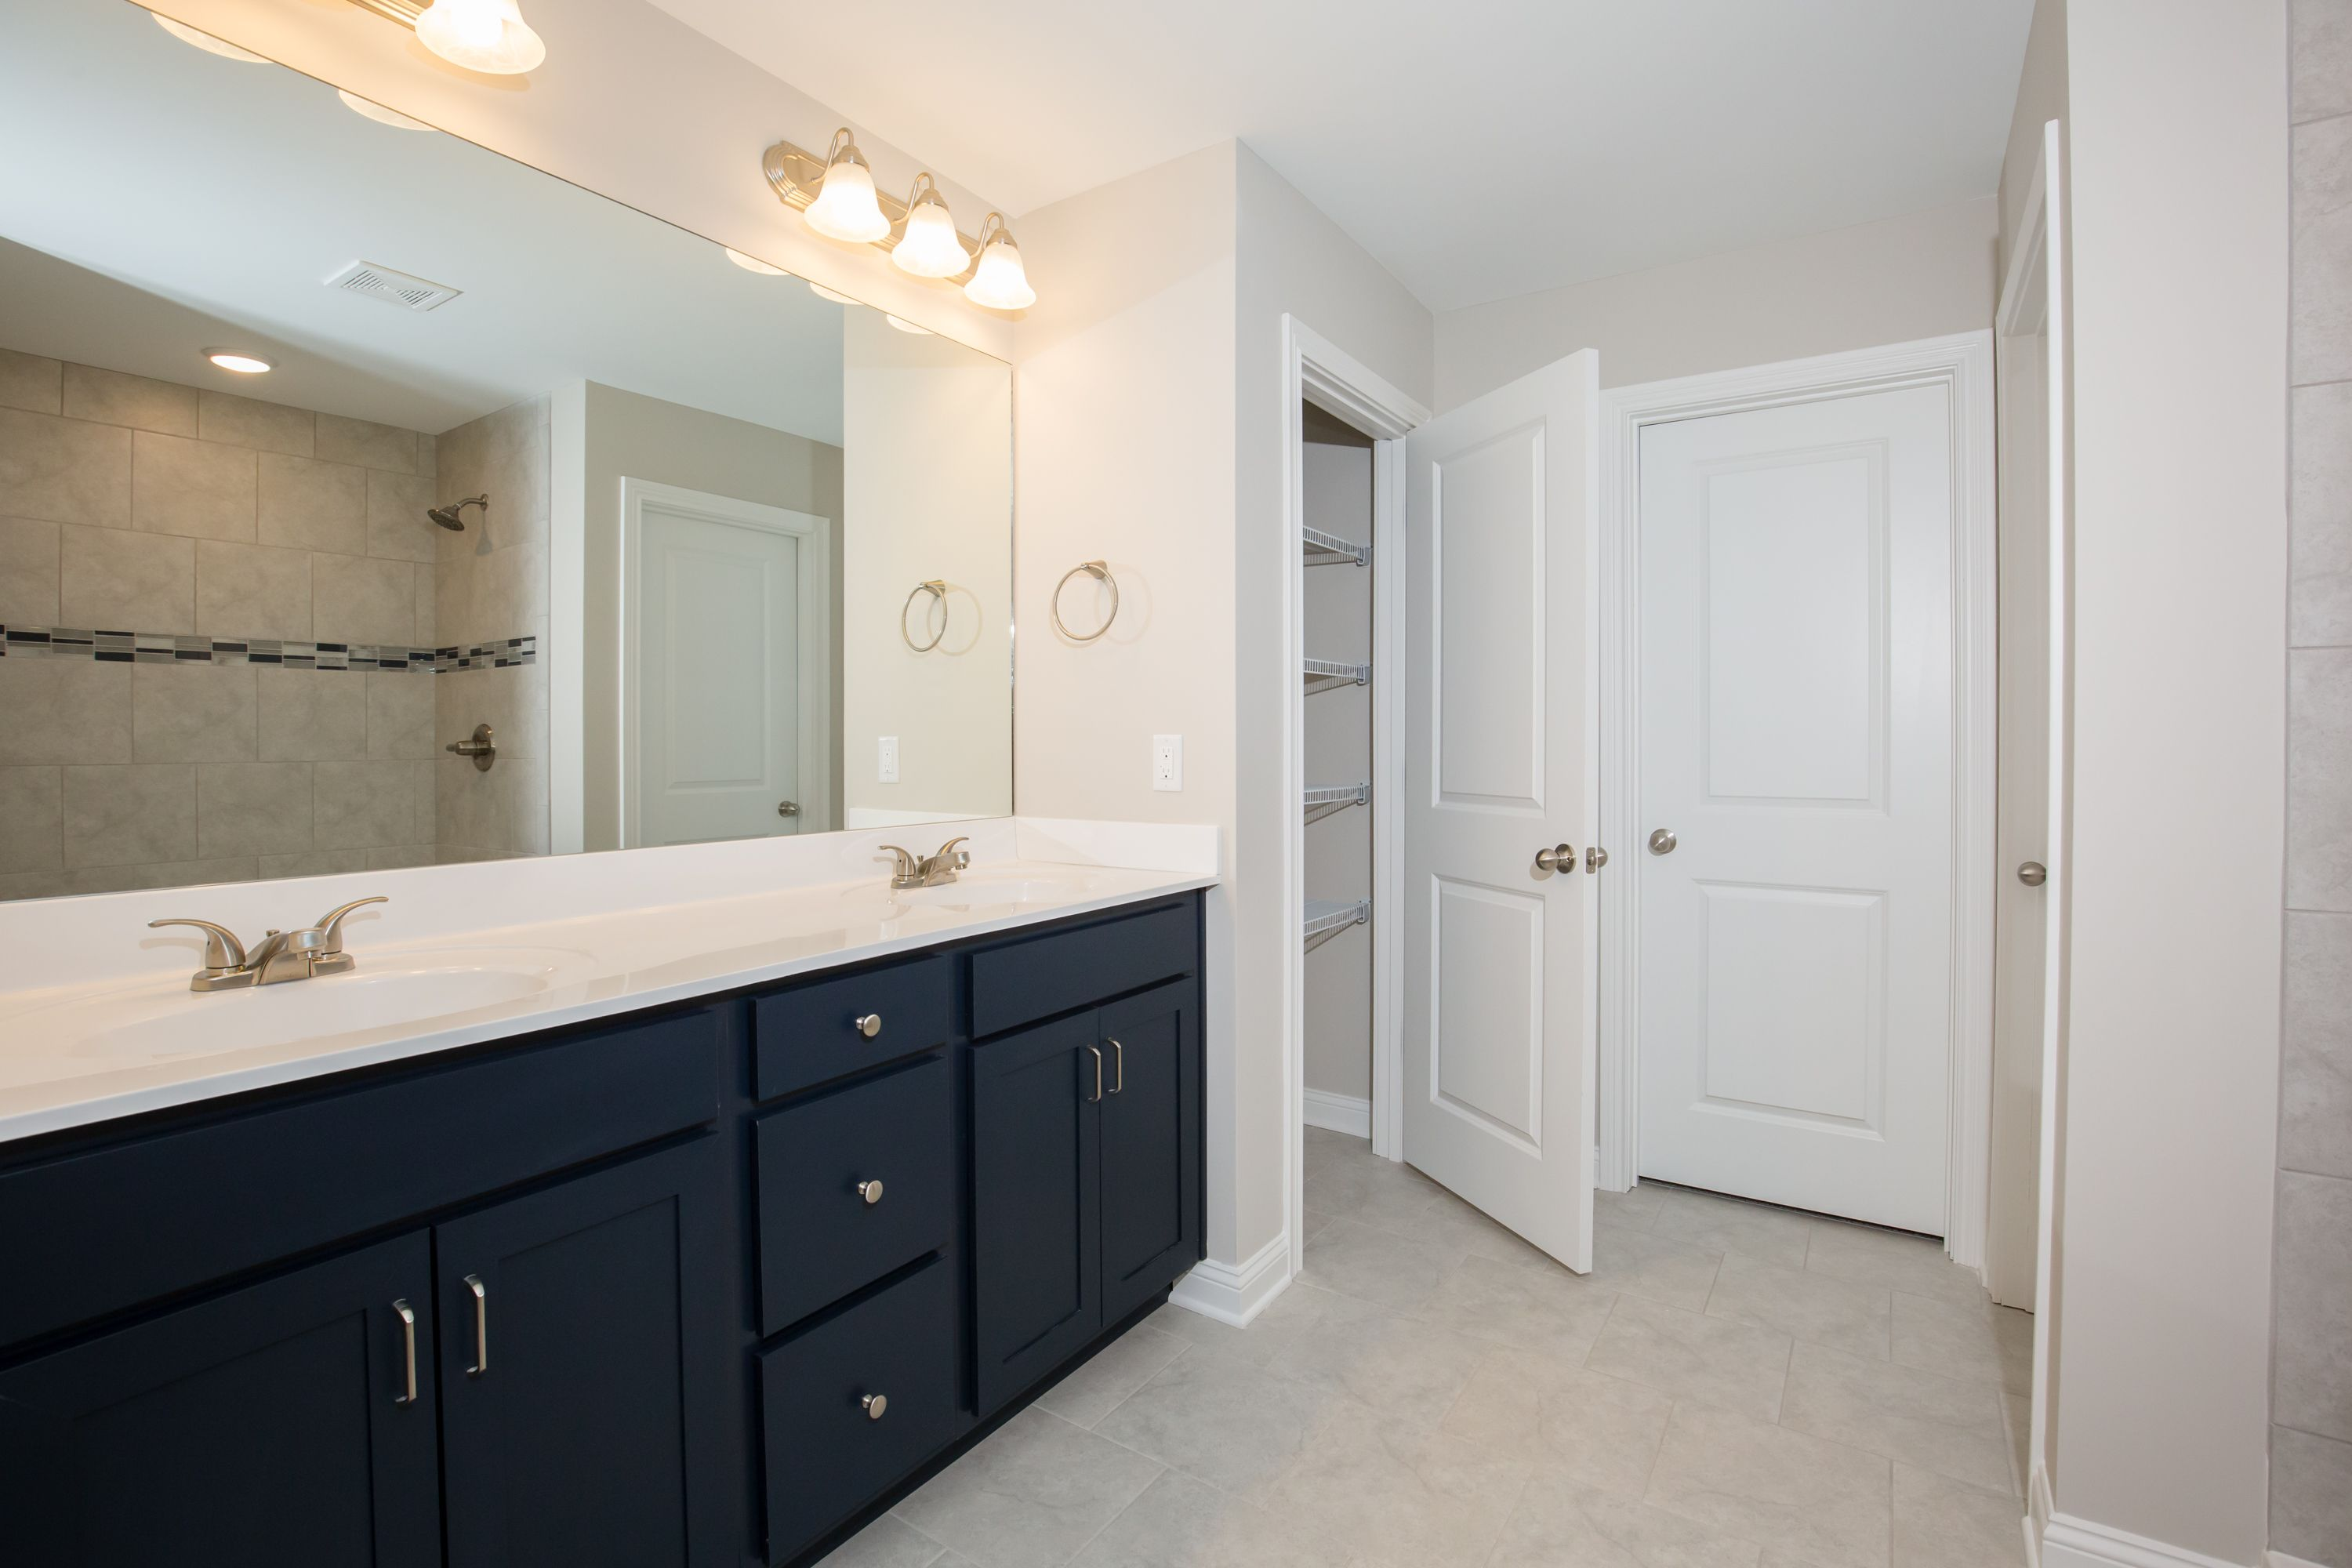 Bathroom featured in The Nancy - 3rd Car By James Monroe Homes in Lexington, KY